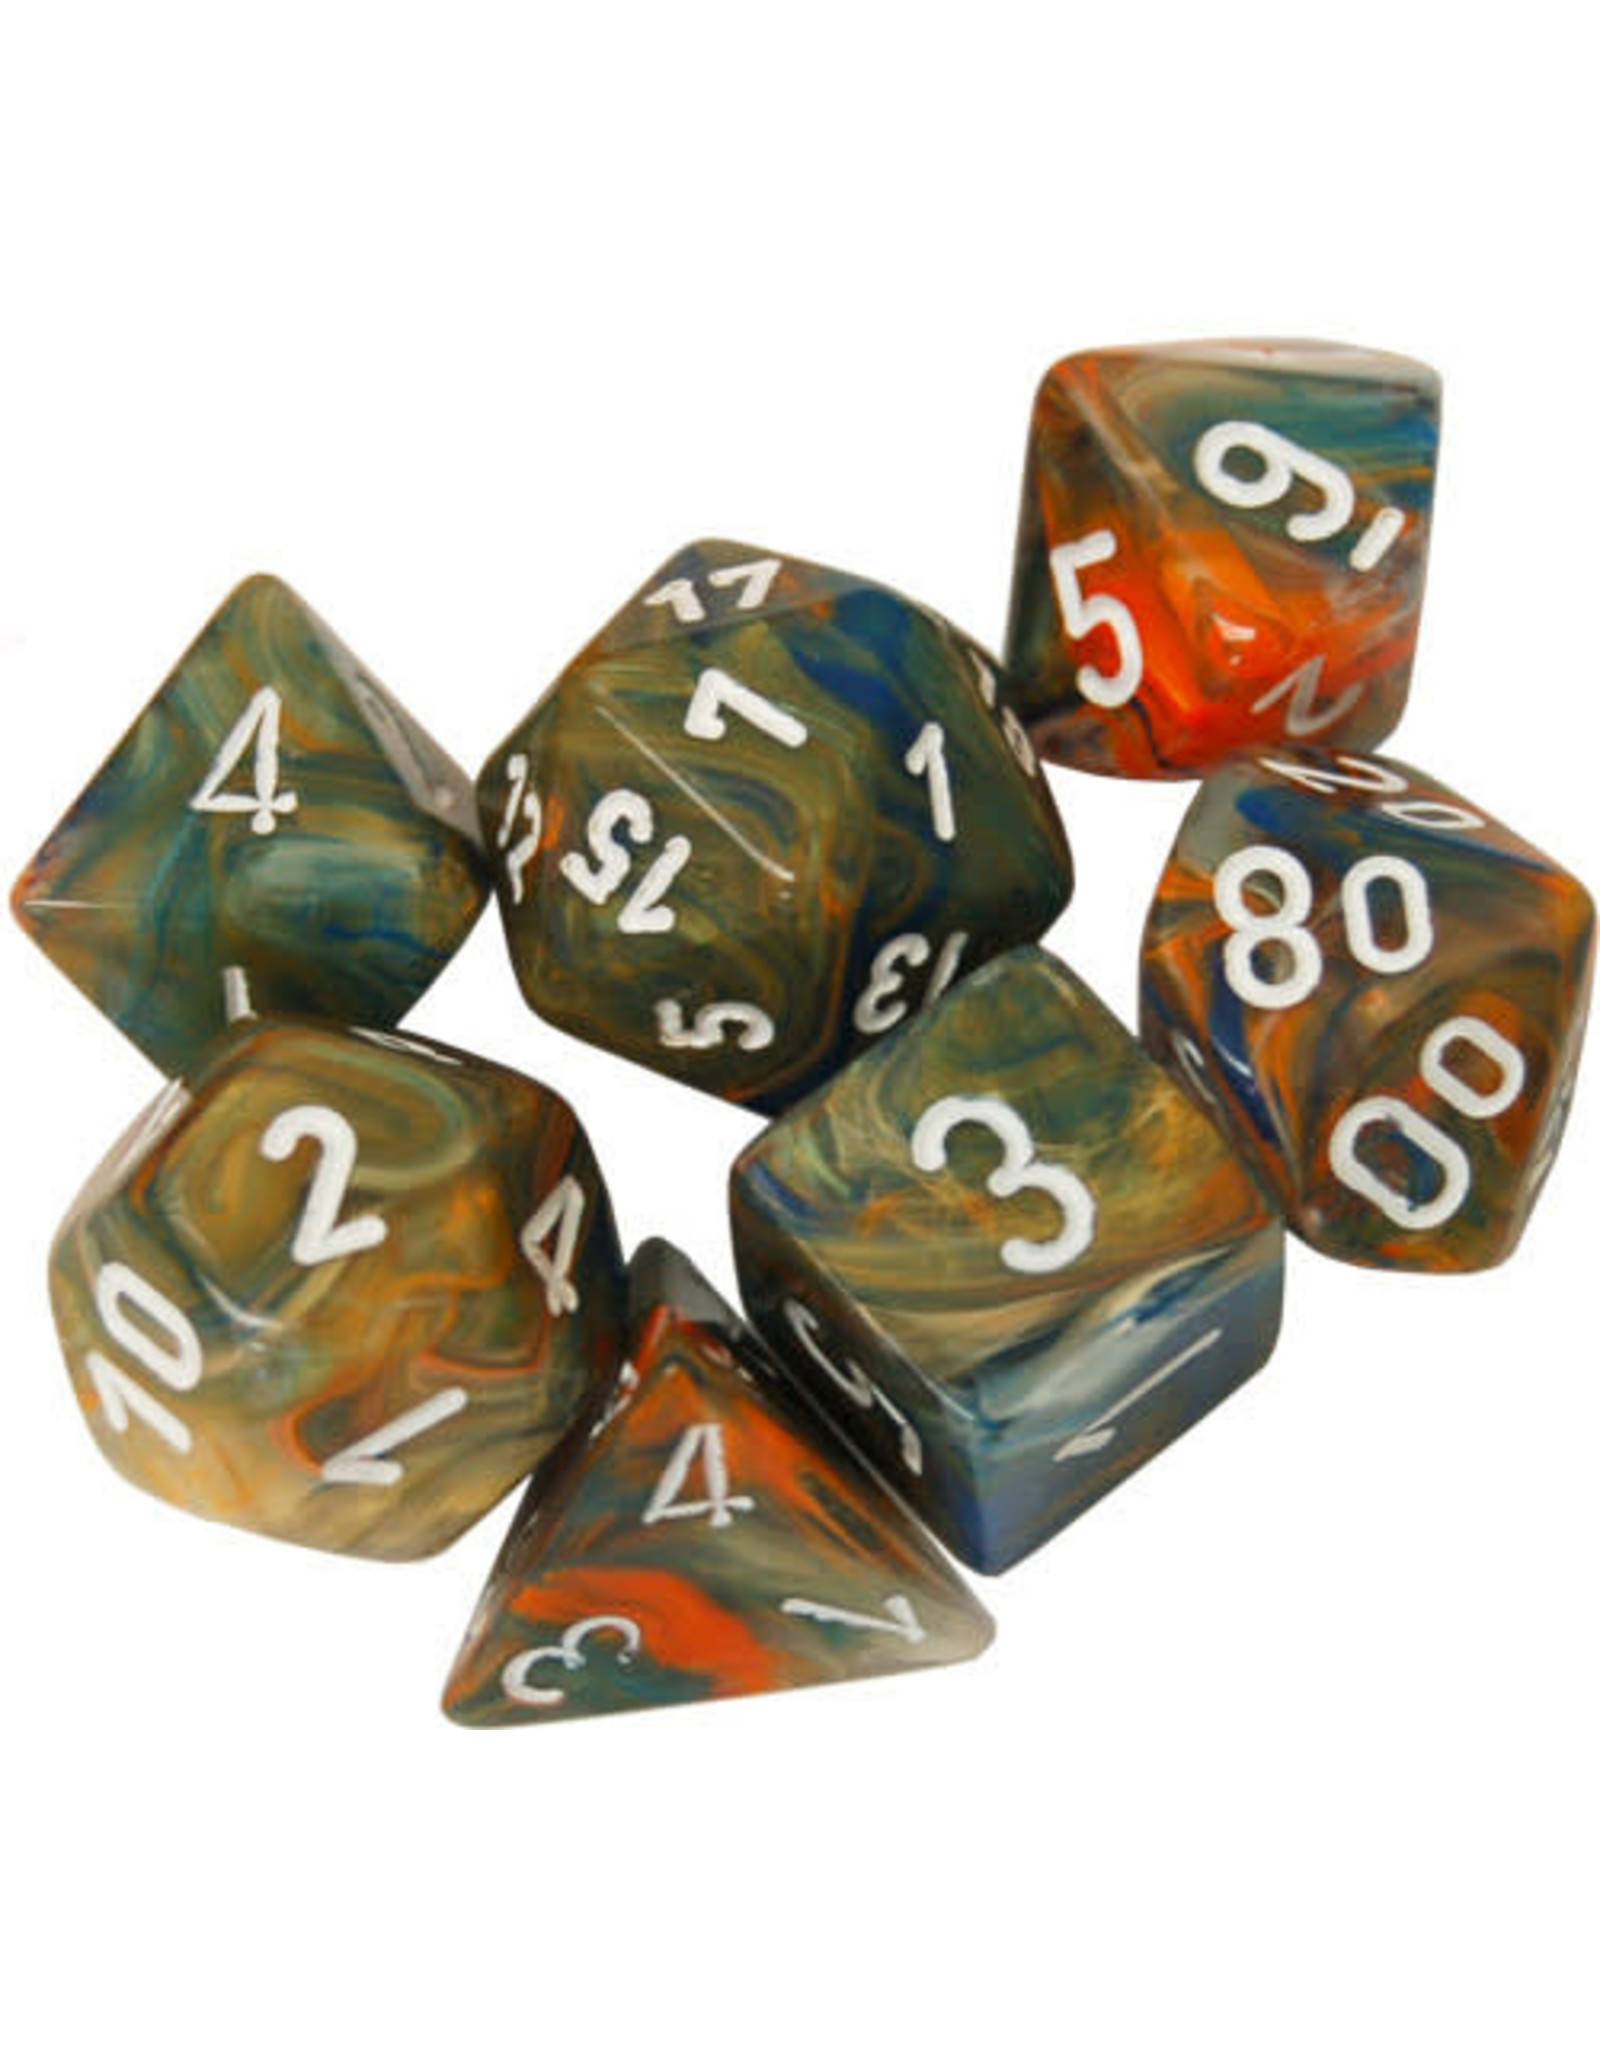 Chessex Chessex: 7-Die Set: Festive: Autumn/White